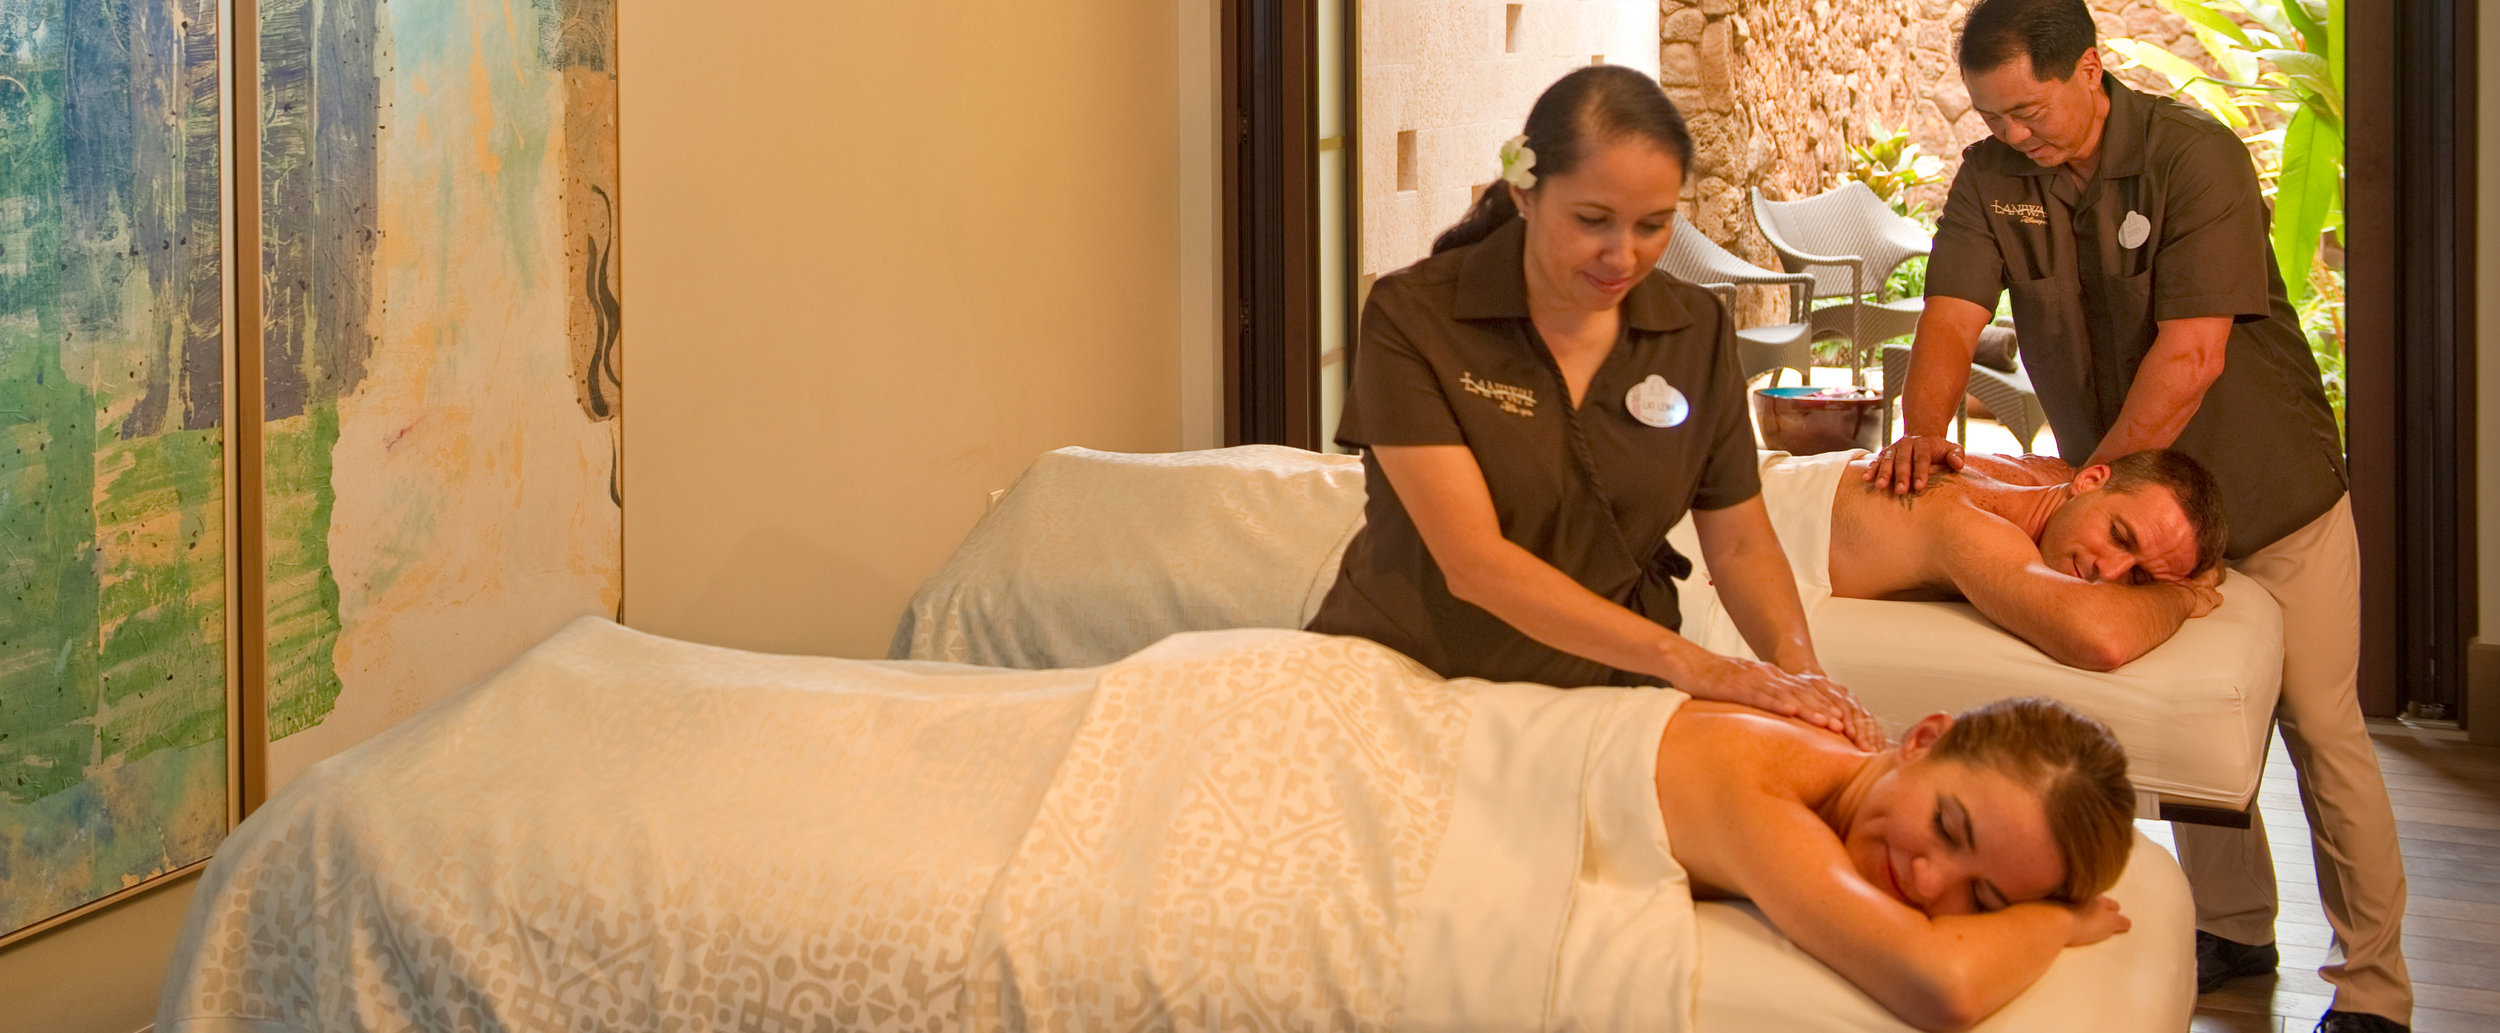 aulani-laniwai-spa-therapies-massage-therapy-couples-massage-g.jpg